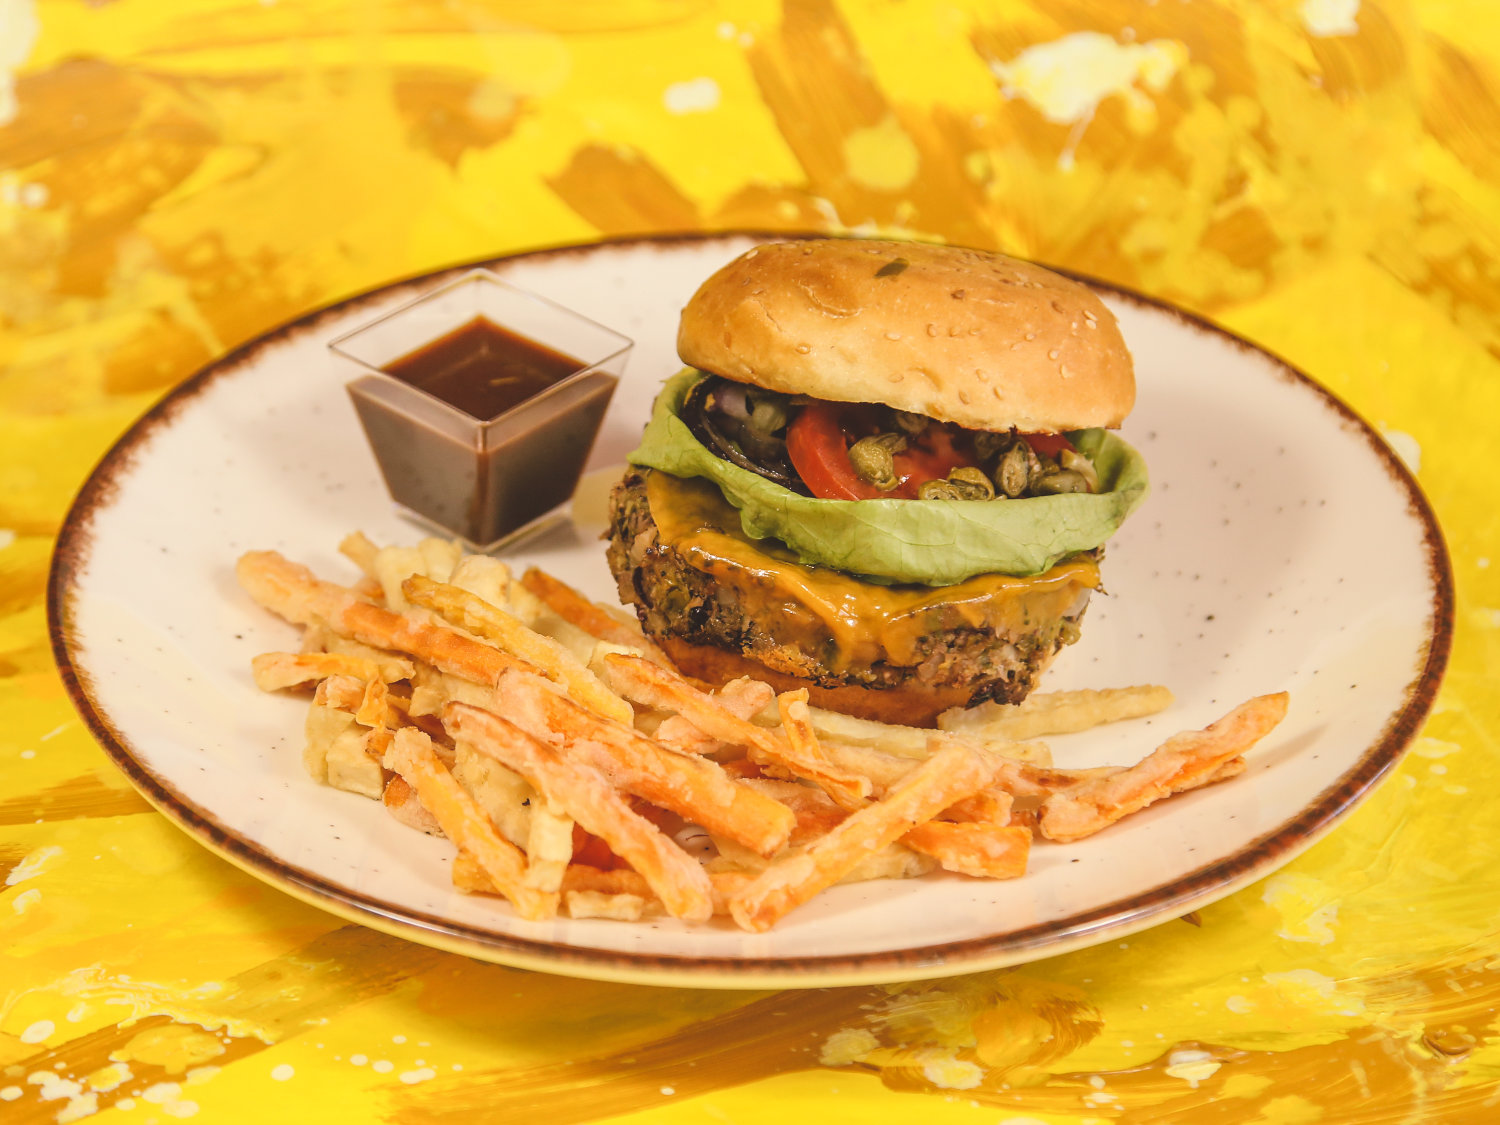 Vegetarian Burger on a pumpkin butter spread with our authentic homemade BBQ sauce, served with celery and carrot French fries